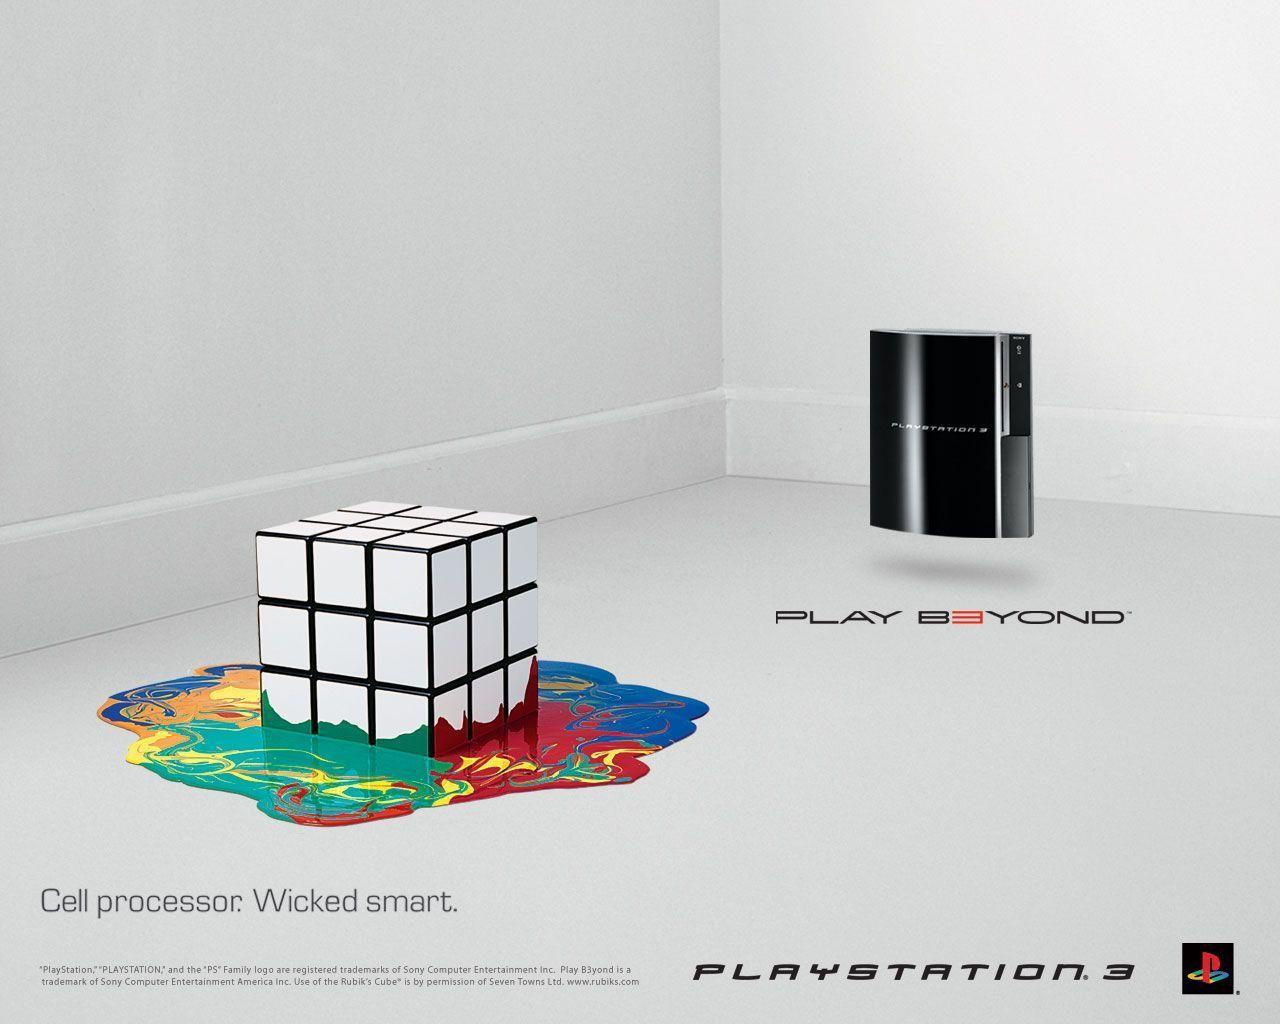 Free PS3 Smart Wallpapers, Free PS3 Smart HD Wallpapers, PS3 Smart